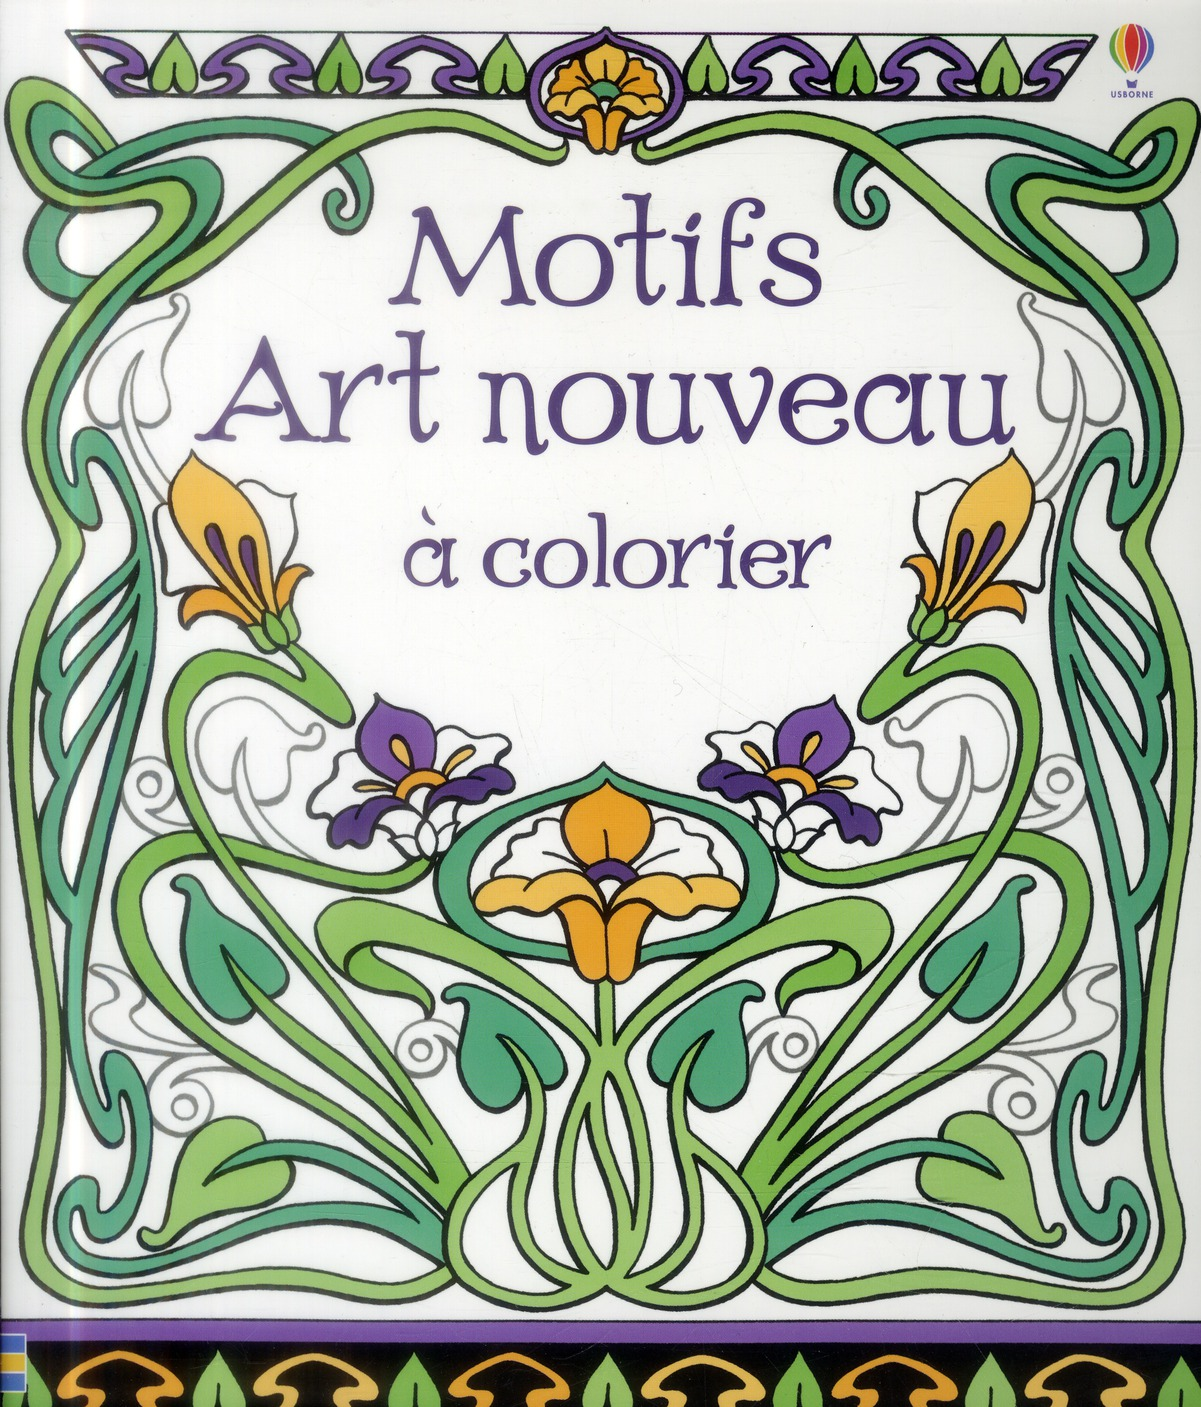 motifs art nouveau a colorier bone emily librairie la page. Black Bedroom Furniture Sets. Home Design Ideas